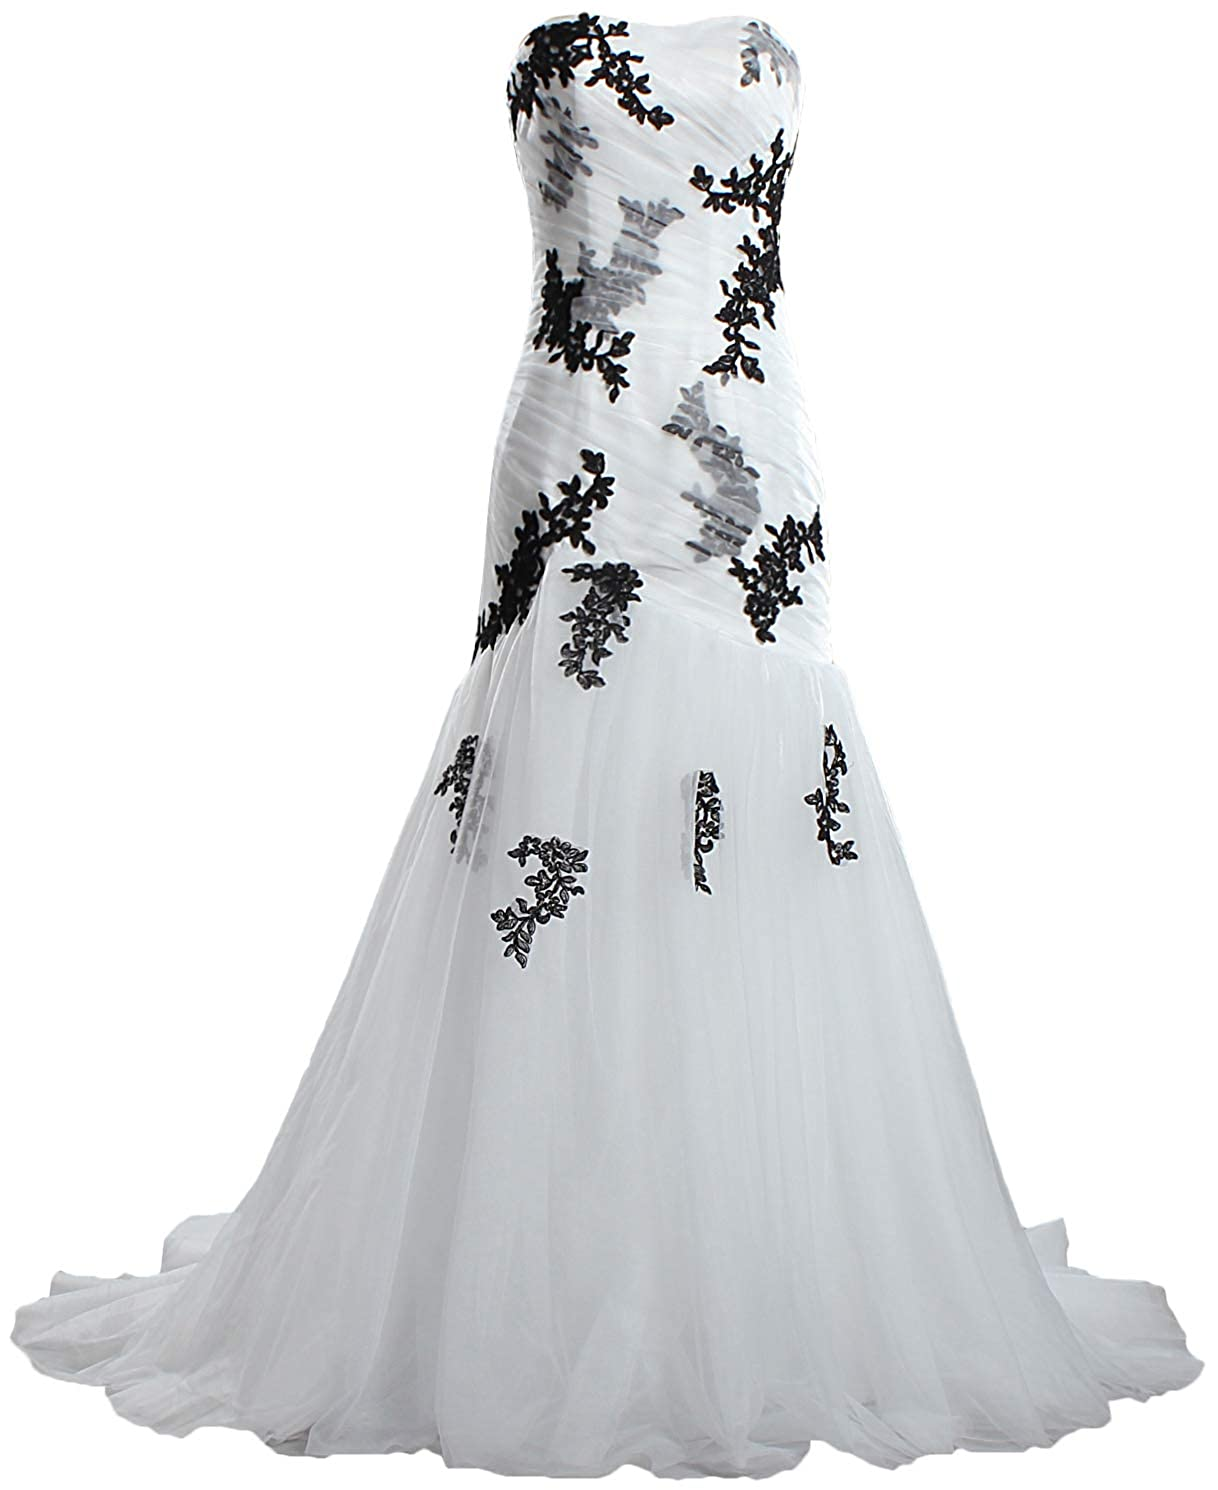 Ivory ANTS Women's Strapless Black Lace Wedding Dresses Mermaid Bridal Gown